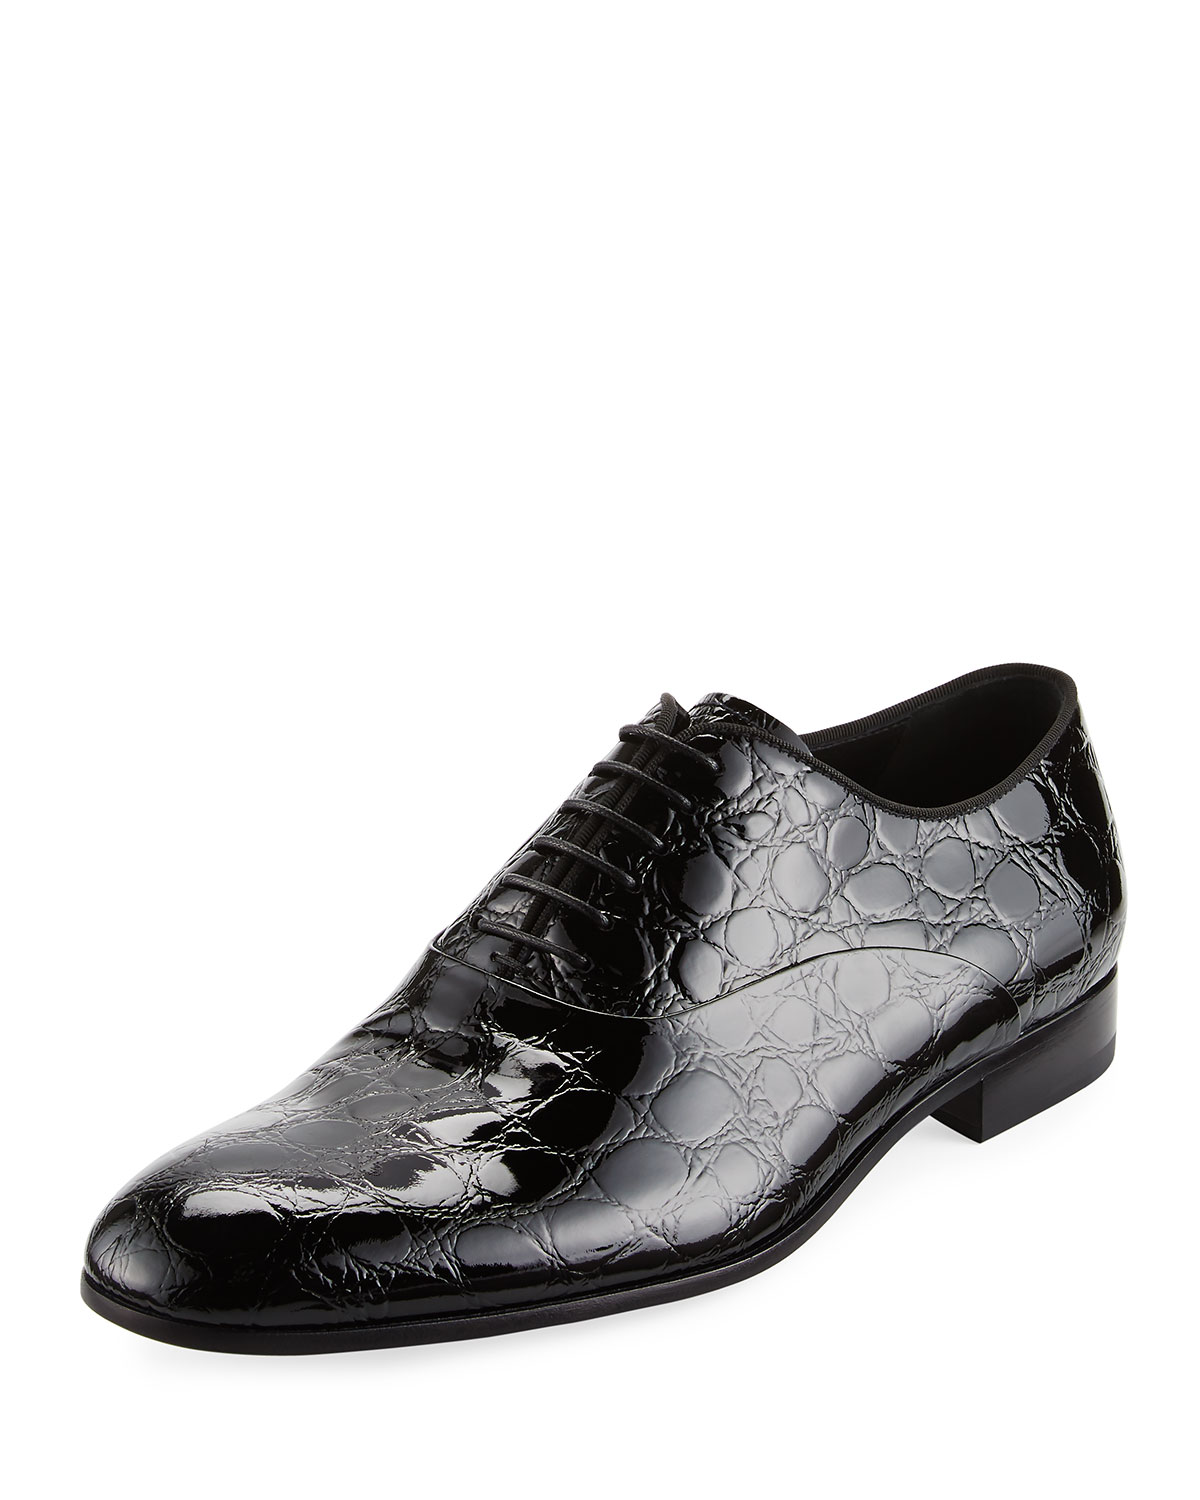 quality design 44503 592b8 Vernice Embossed Patent Leather Oxford, Black